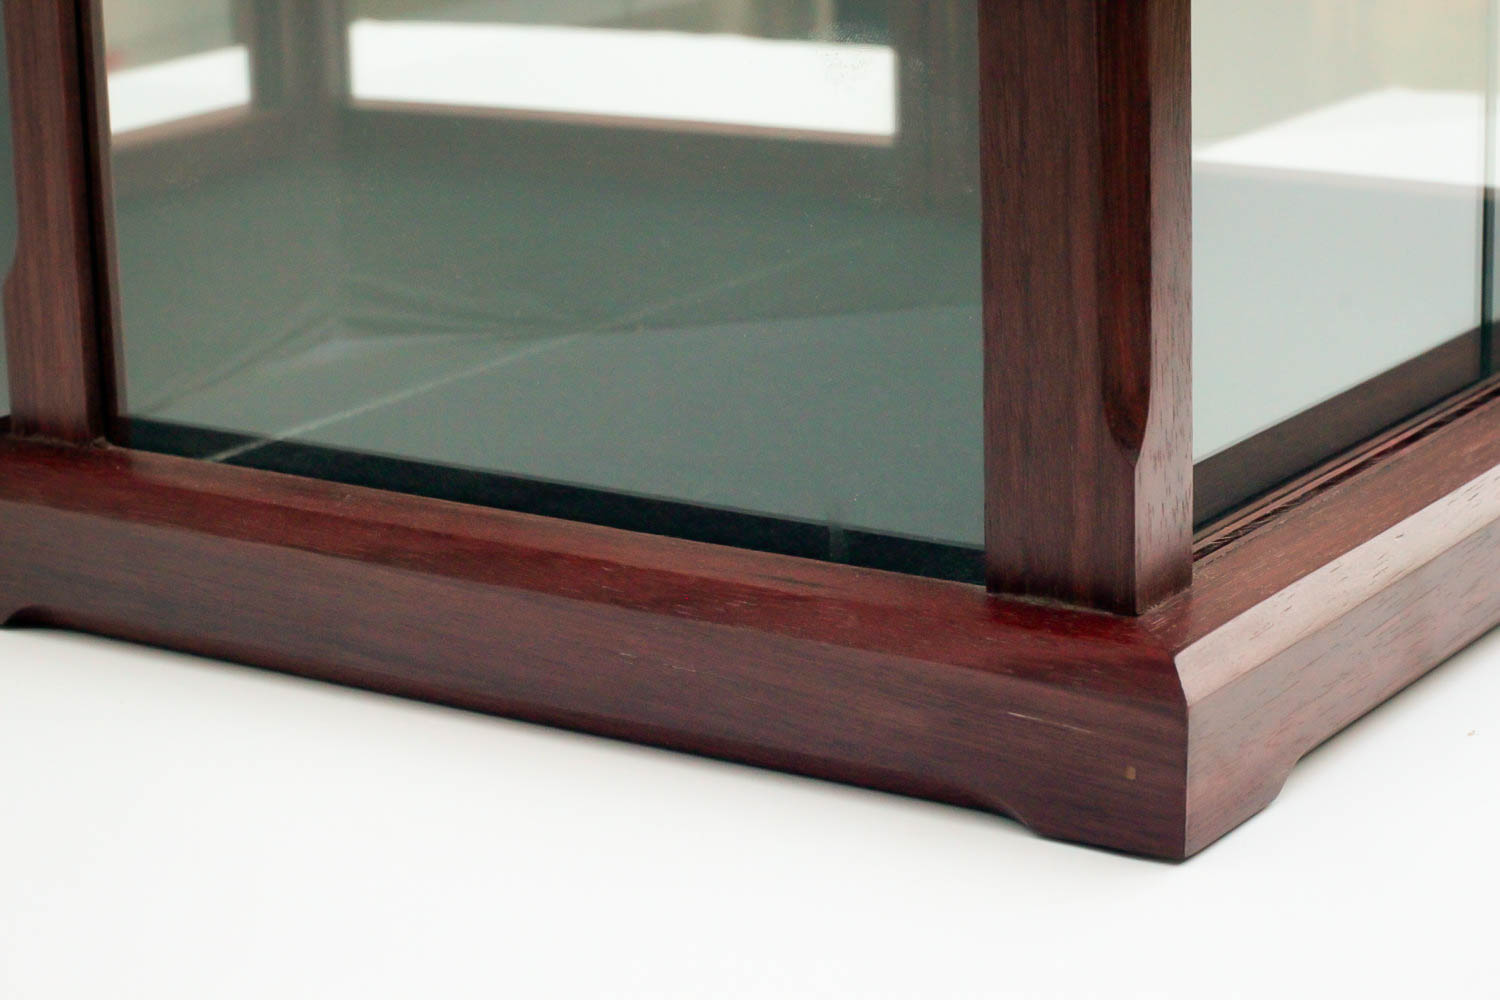 Handmade Display Case Made From Peruvian Walnut For Dolls, Models, Crystal Figurines